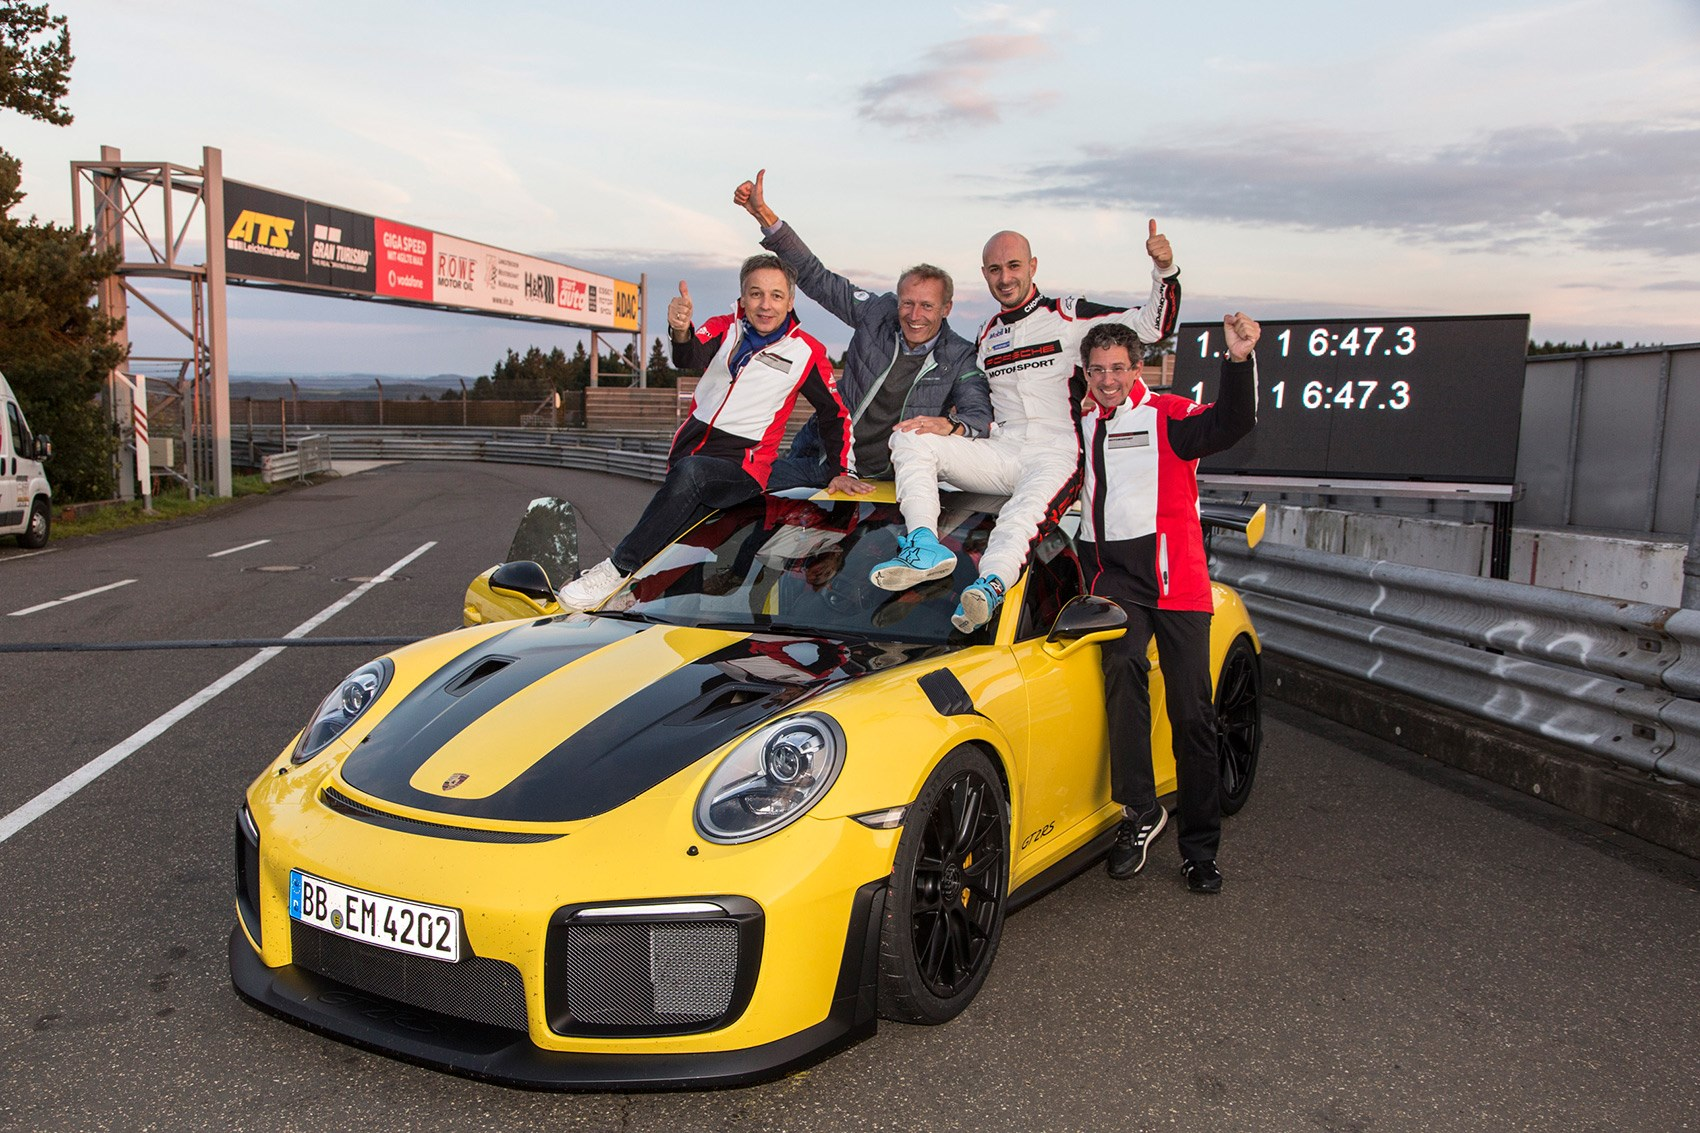 Porsche 911 GT2 RS smashes (by 1 second) RWD Nurburgring record